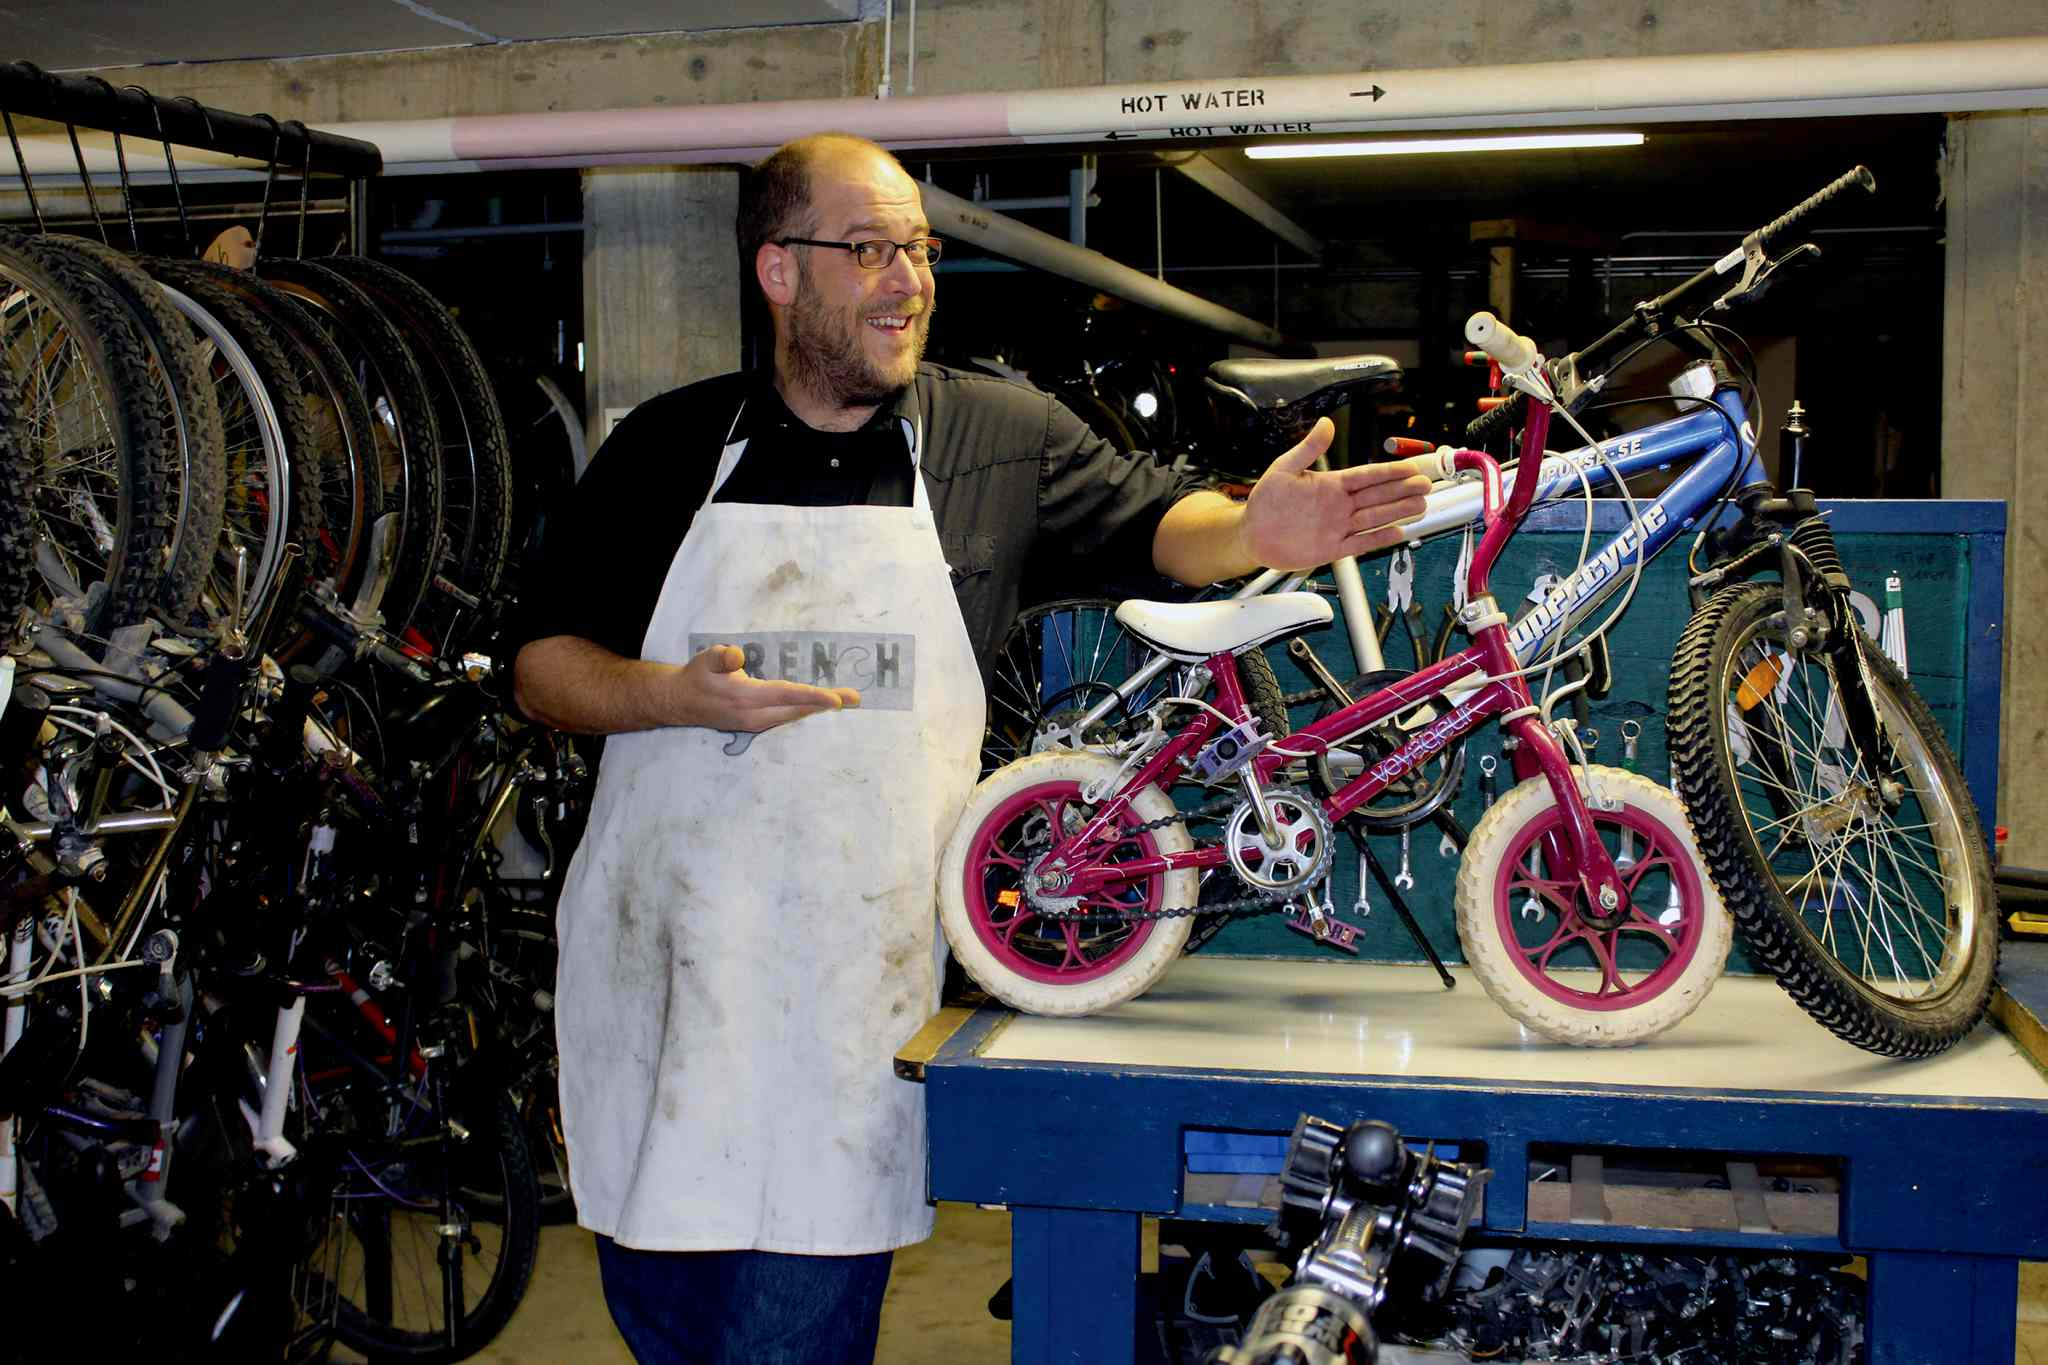 WRENCH executive director Patrick Krawec is excited to build over 250 bikes for those less fortunate with his team of mechanics and volunteers.